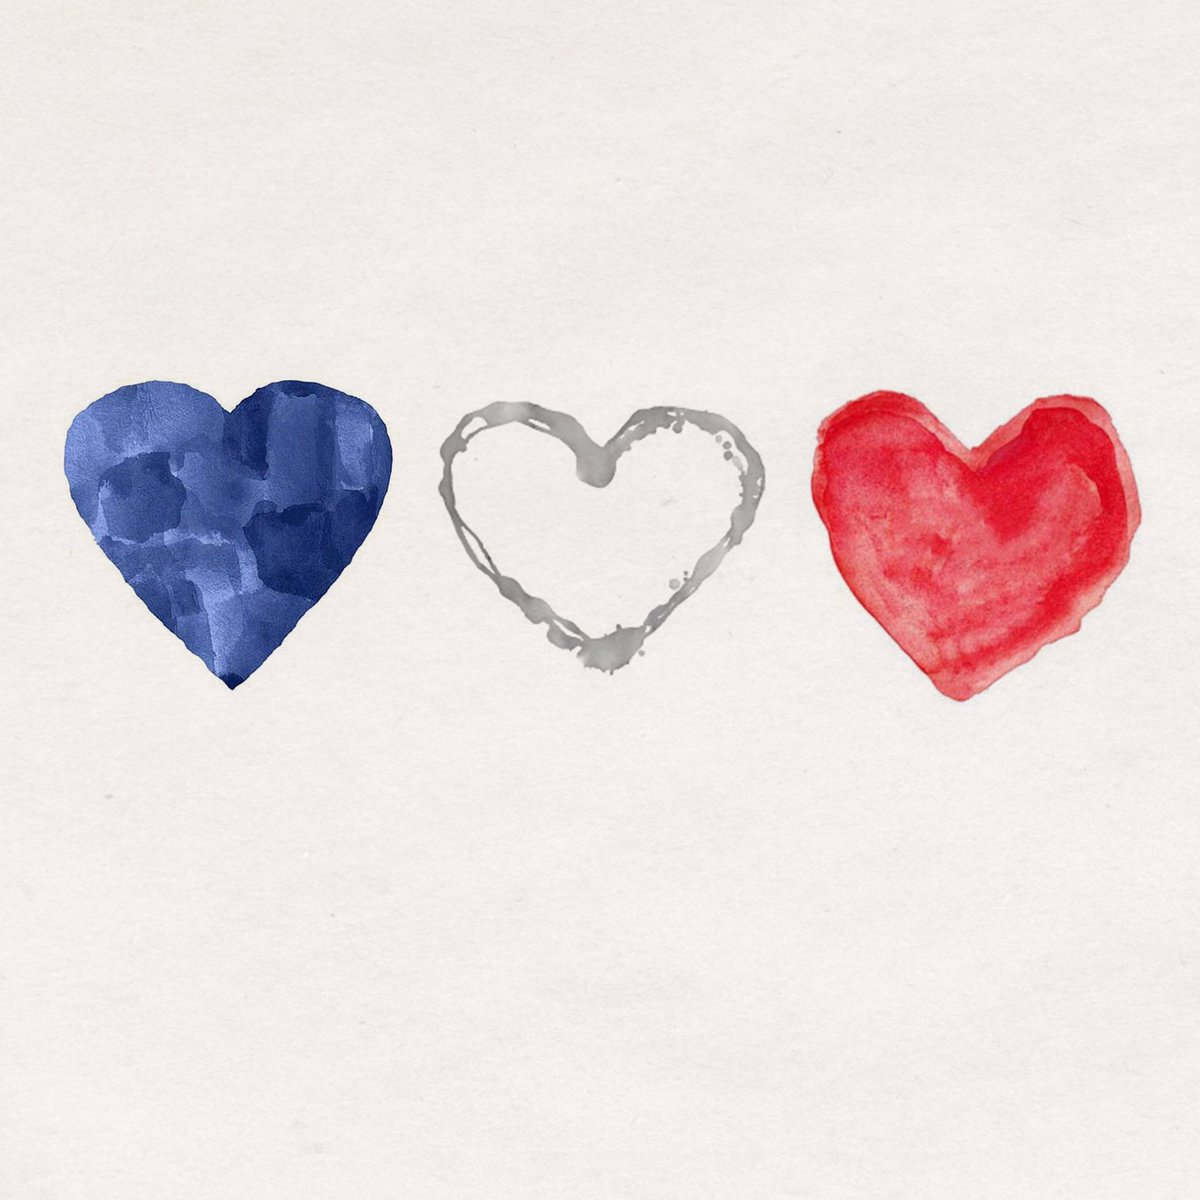 Our hearts go out to all who are affected by these tragic events. #prayfornice #prayforpeace https://t.co/nbtM4lgjRs